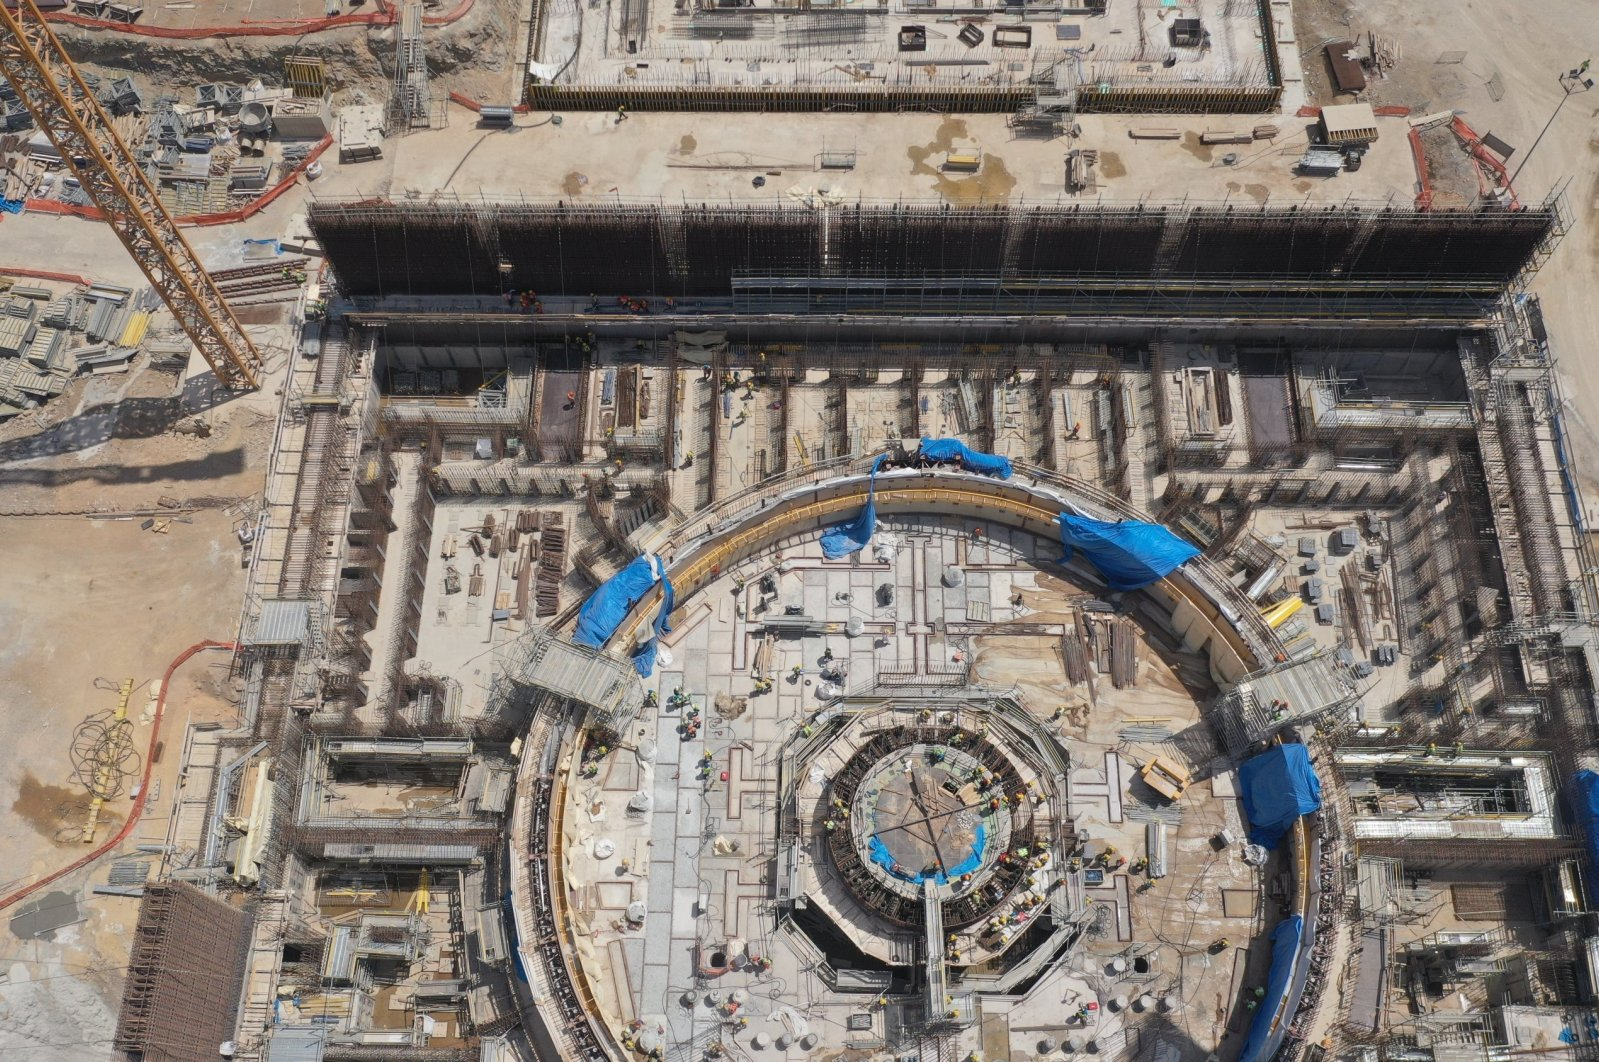 An aerial view showing the construction site of the Akkuyu NPP, Mersin, southern Turkey, June 26, 2020. (Energy and Natural Resources Ministry via AA)